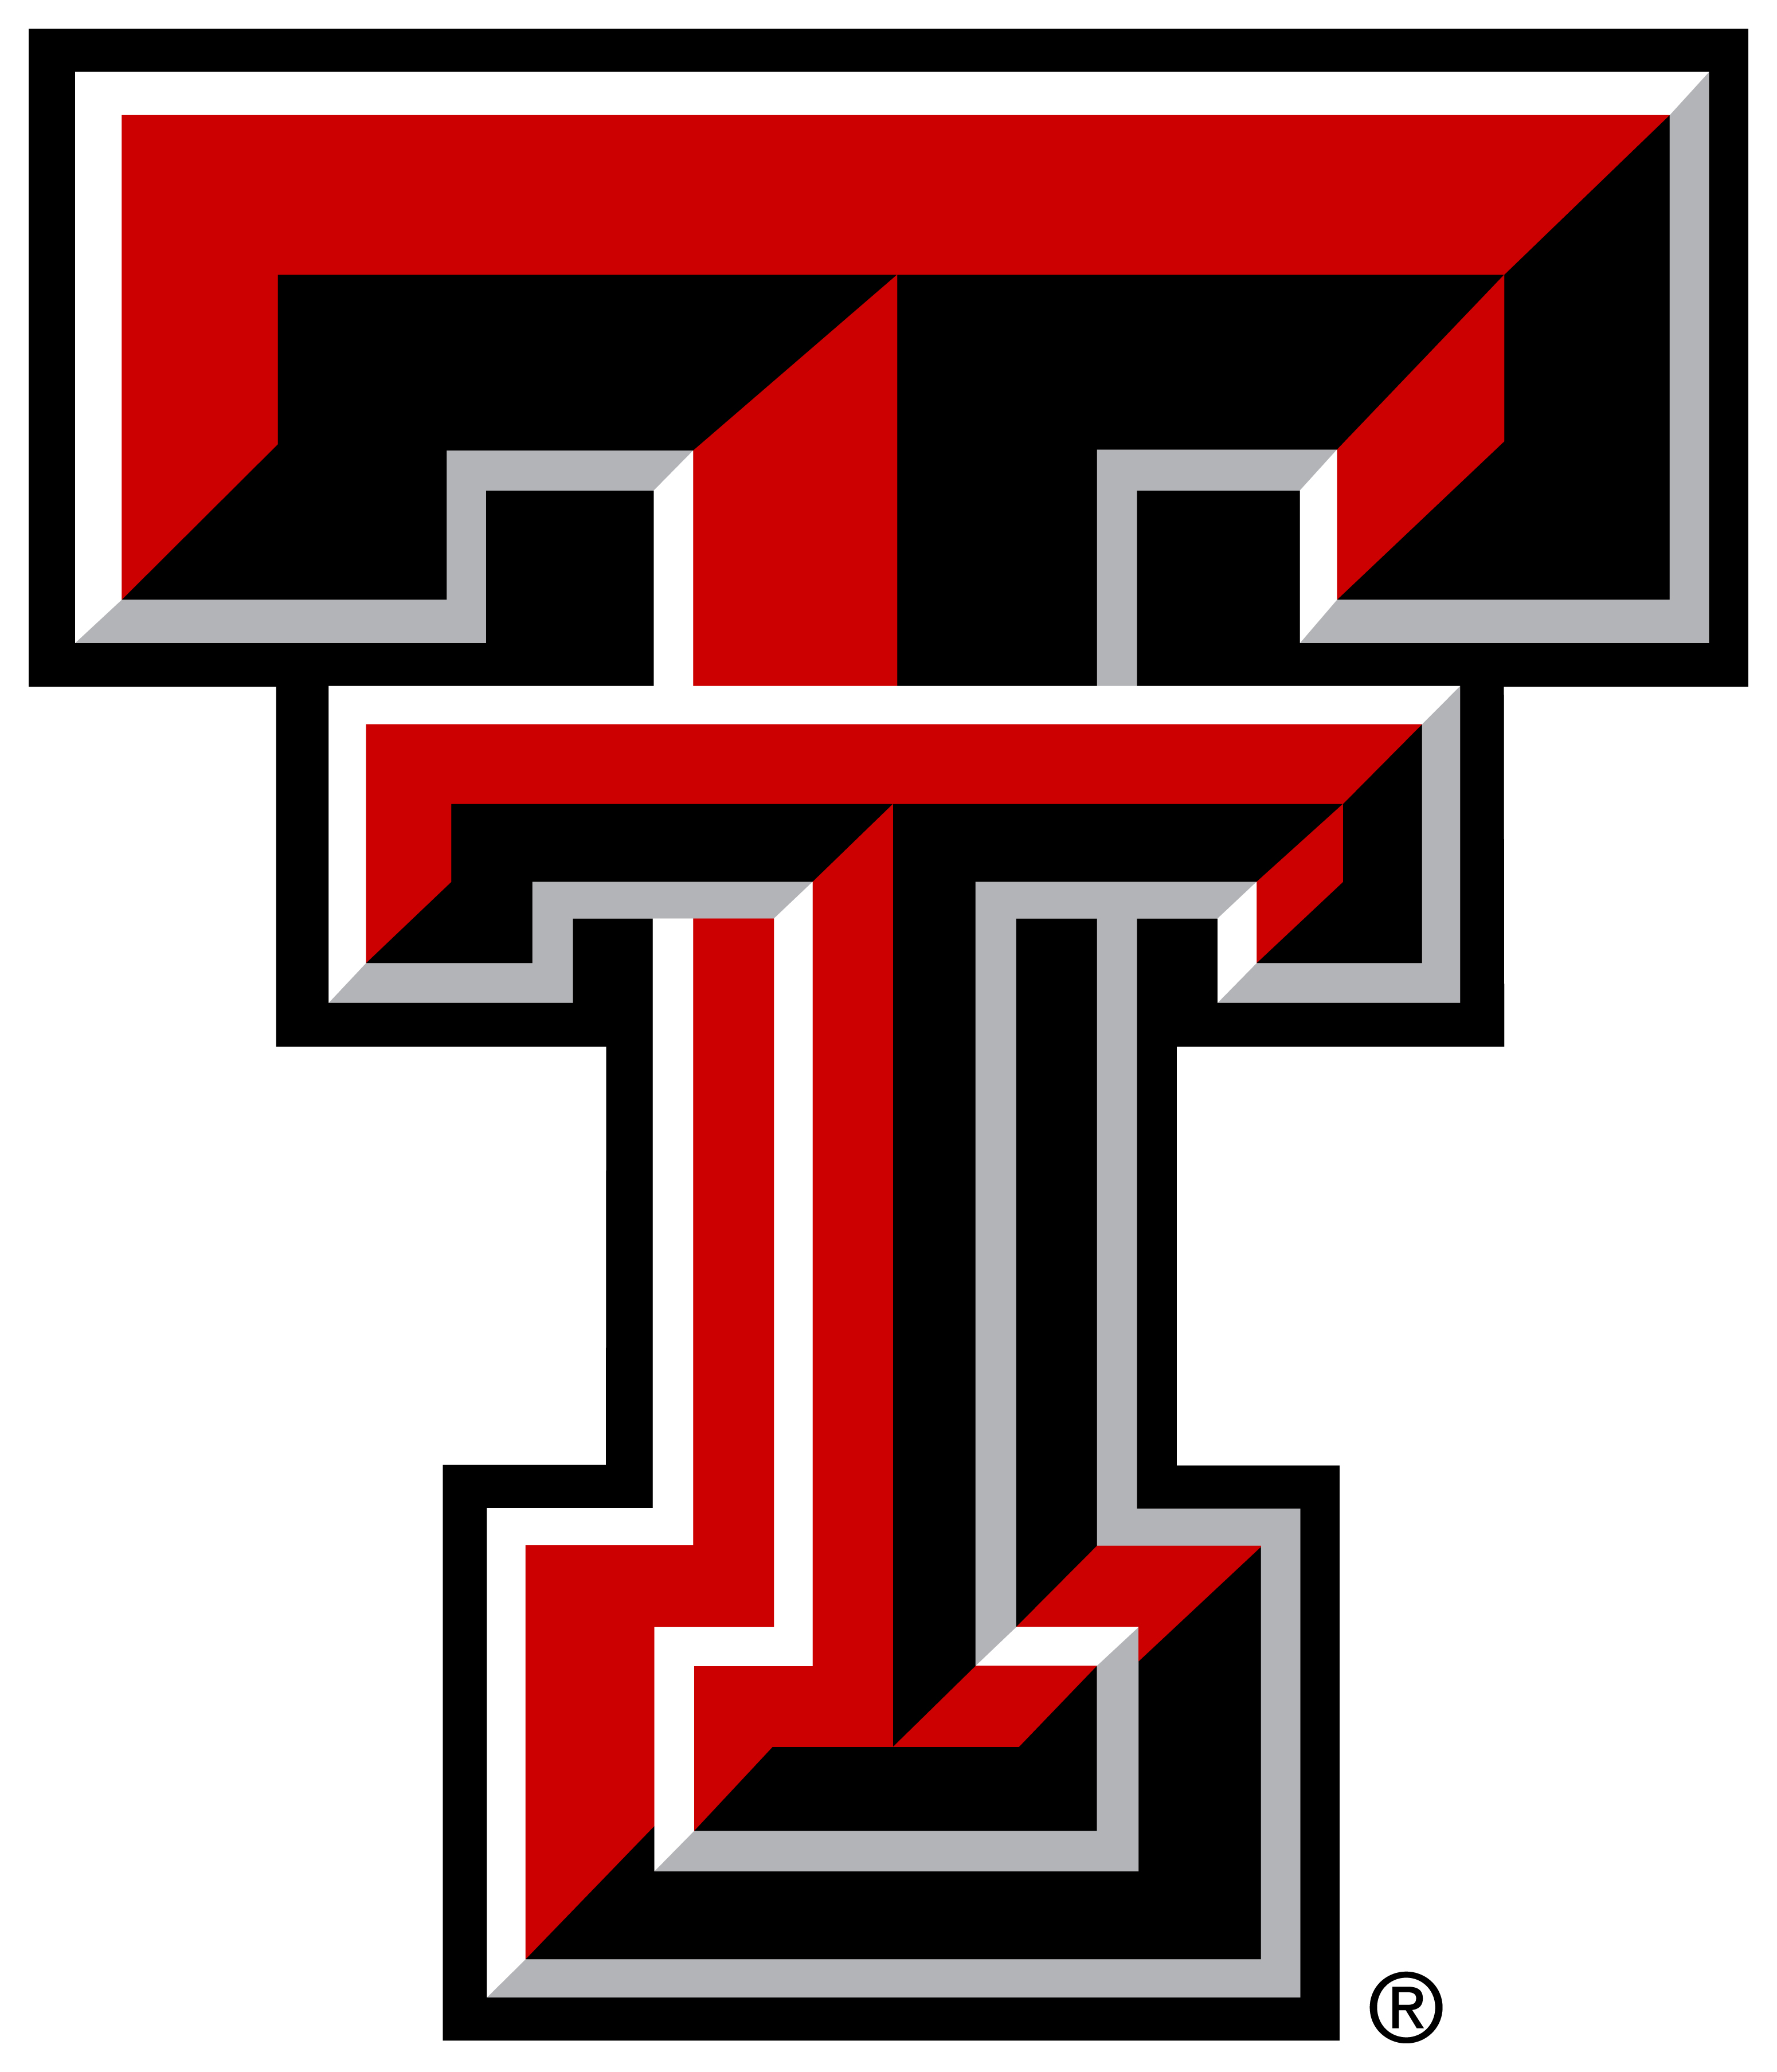 Texas Tech University Campus Photo Gallery clipart free image.